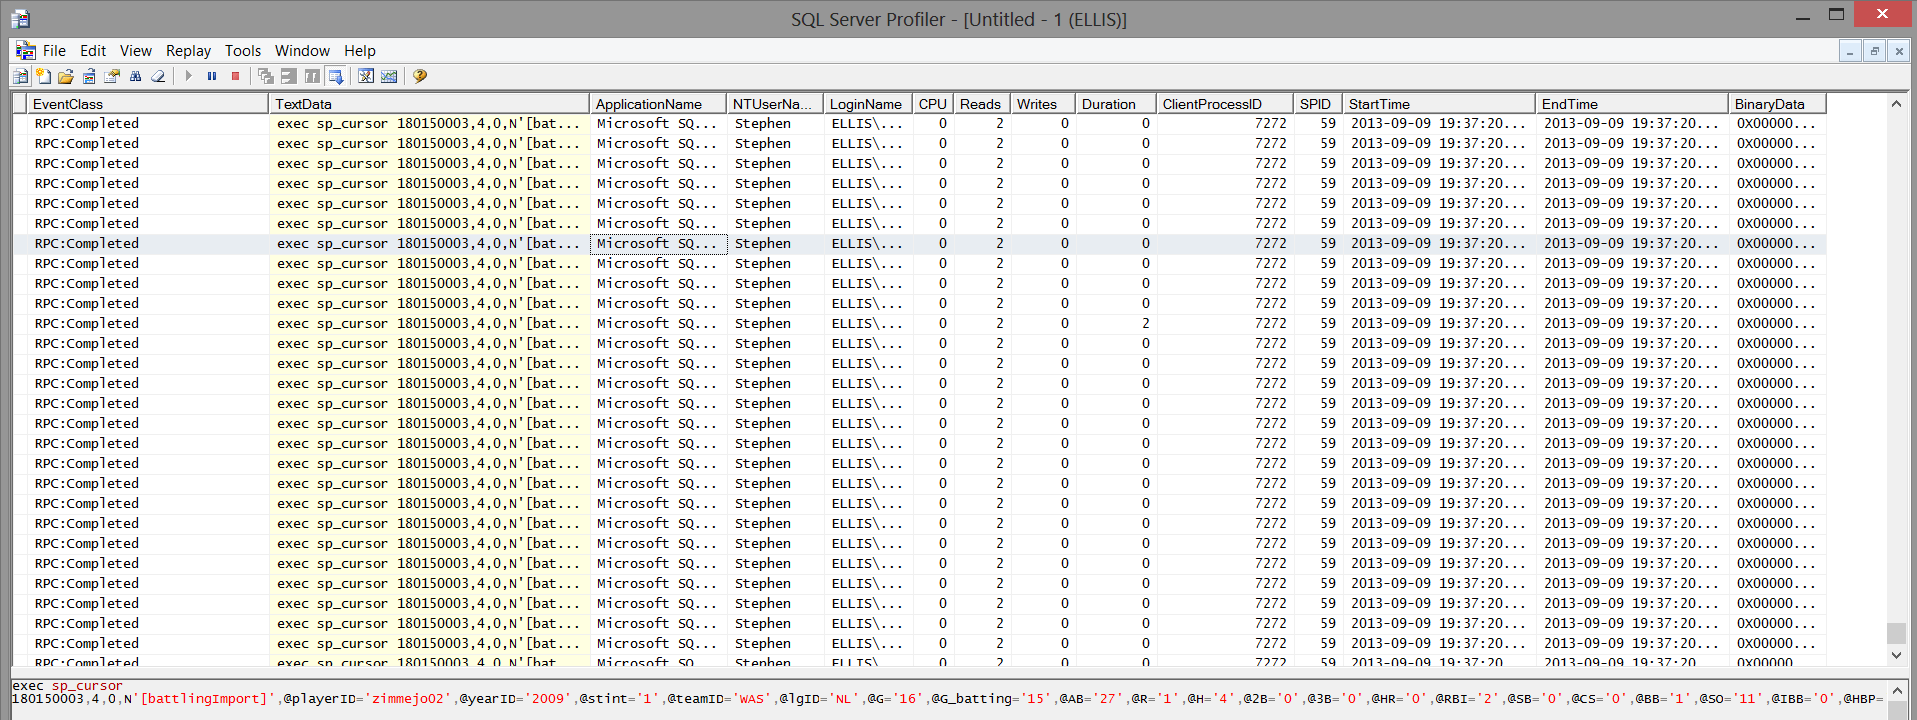 Ssis Fast Load